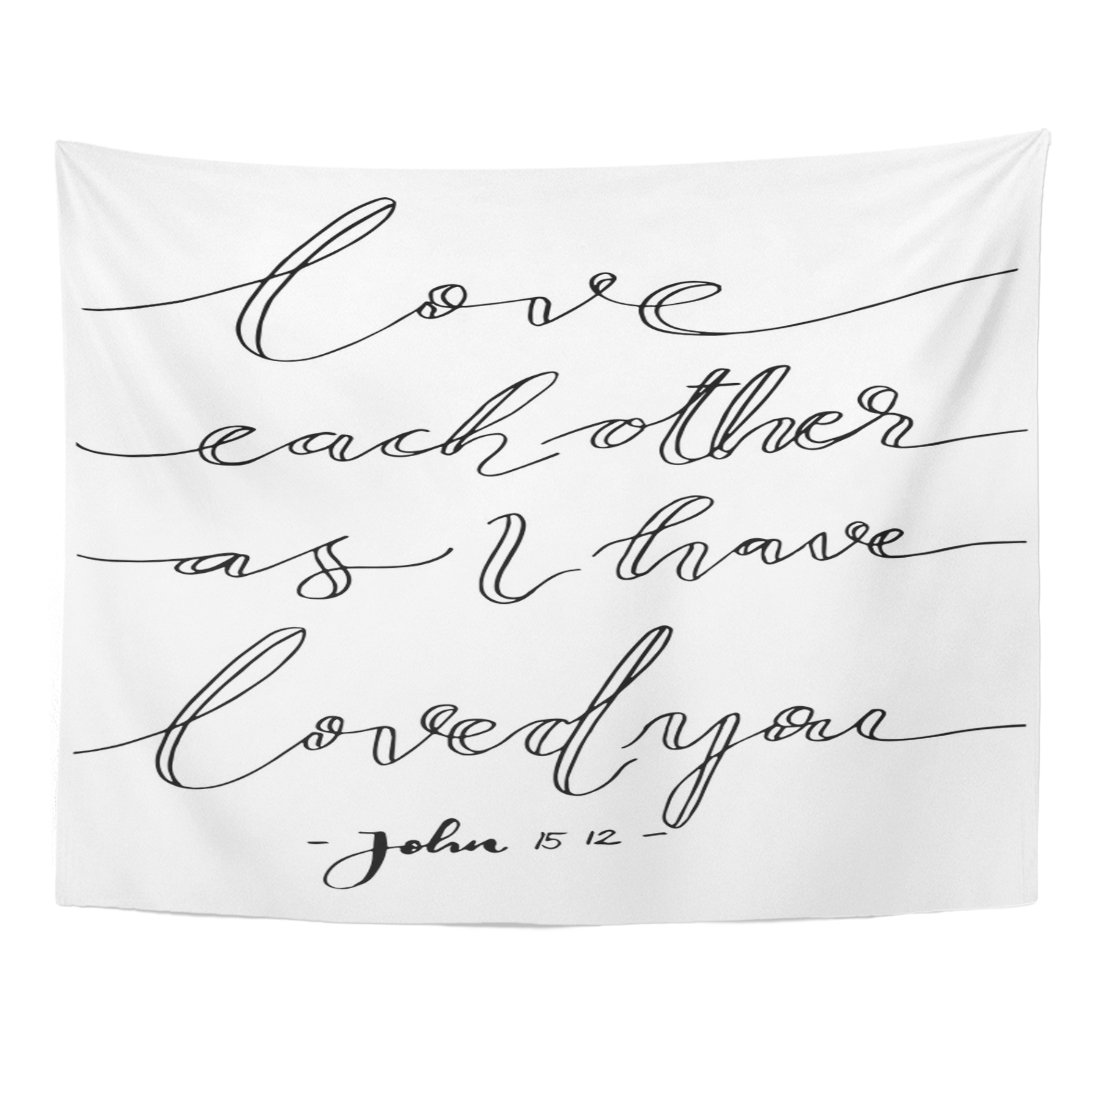 Breezat Tapestry Wall Love Each Other As I Have Loved You Lettering Bible Verse Modern Calligraphy Christian Beautiful Home Decor Wall Hanging for Living Room Bedroom Dorm 60x80 Inches